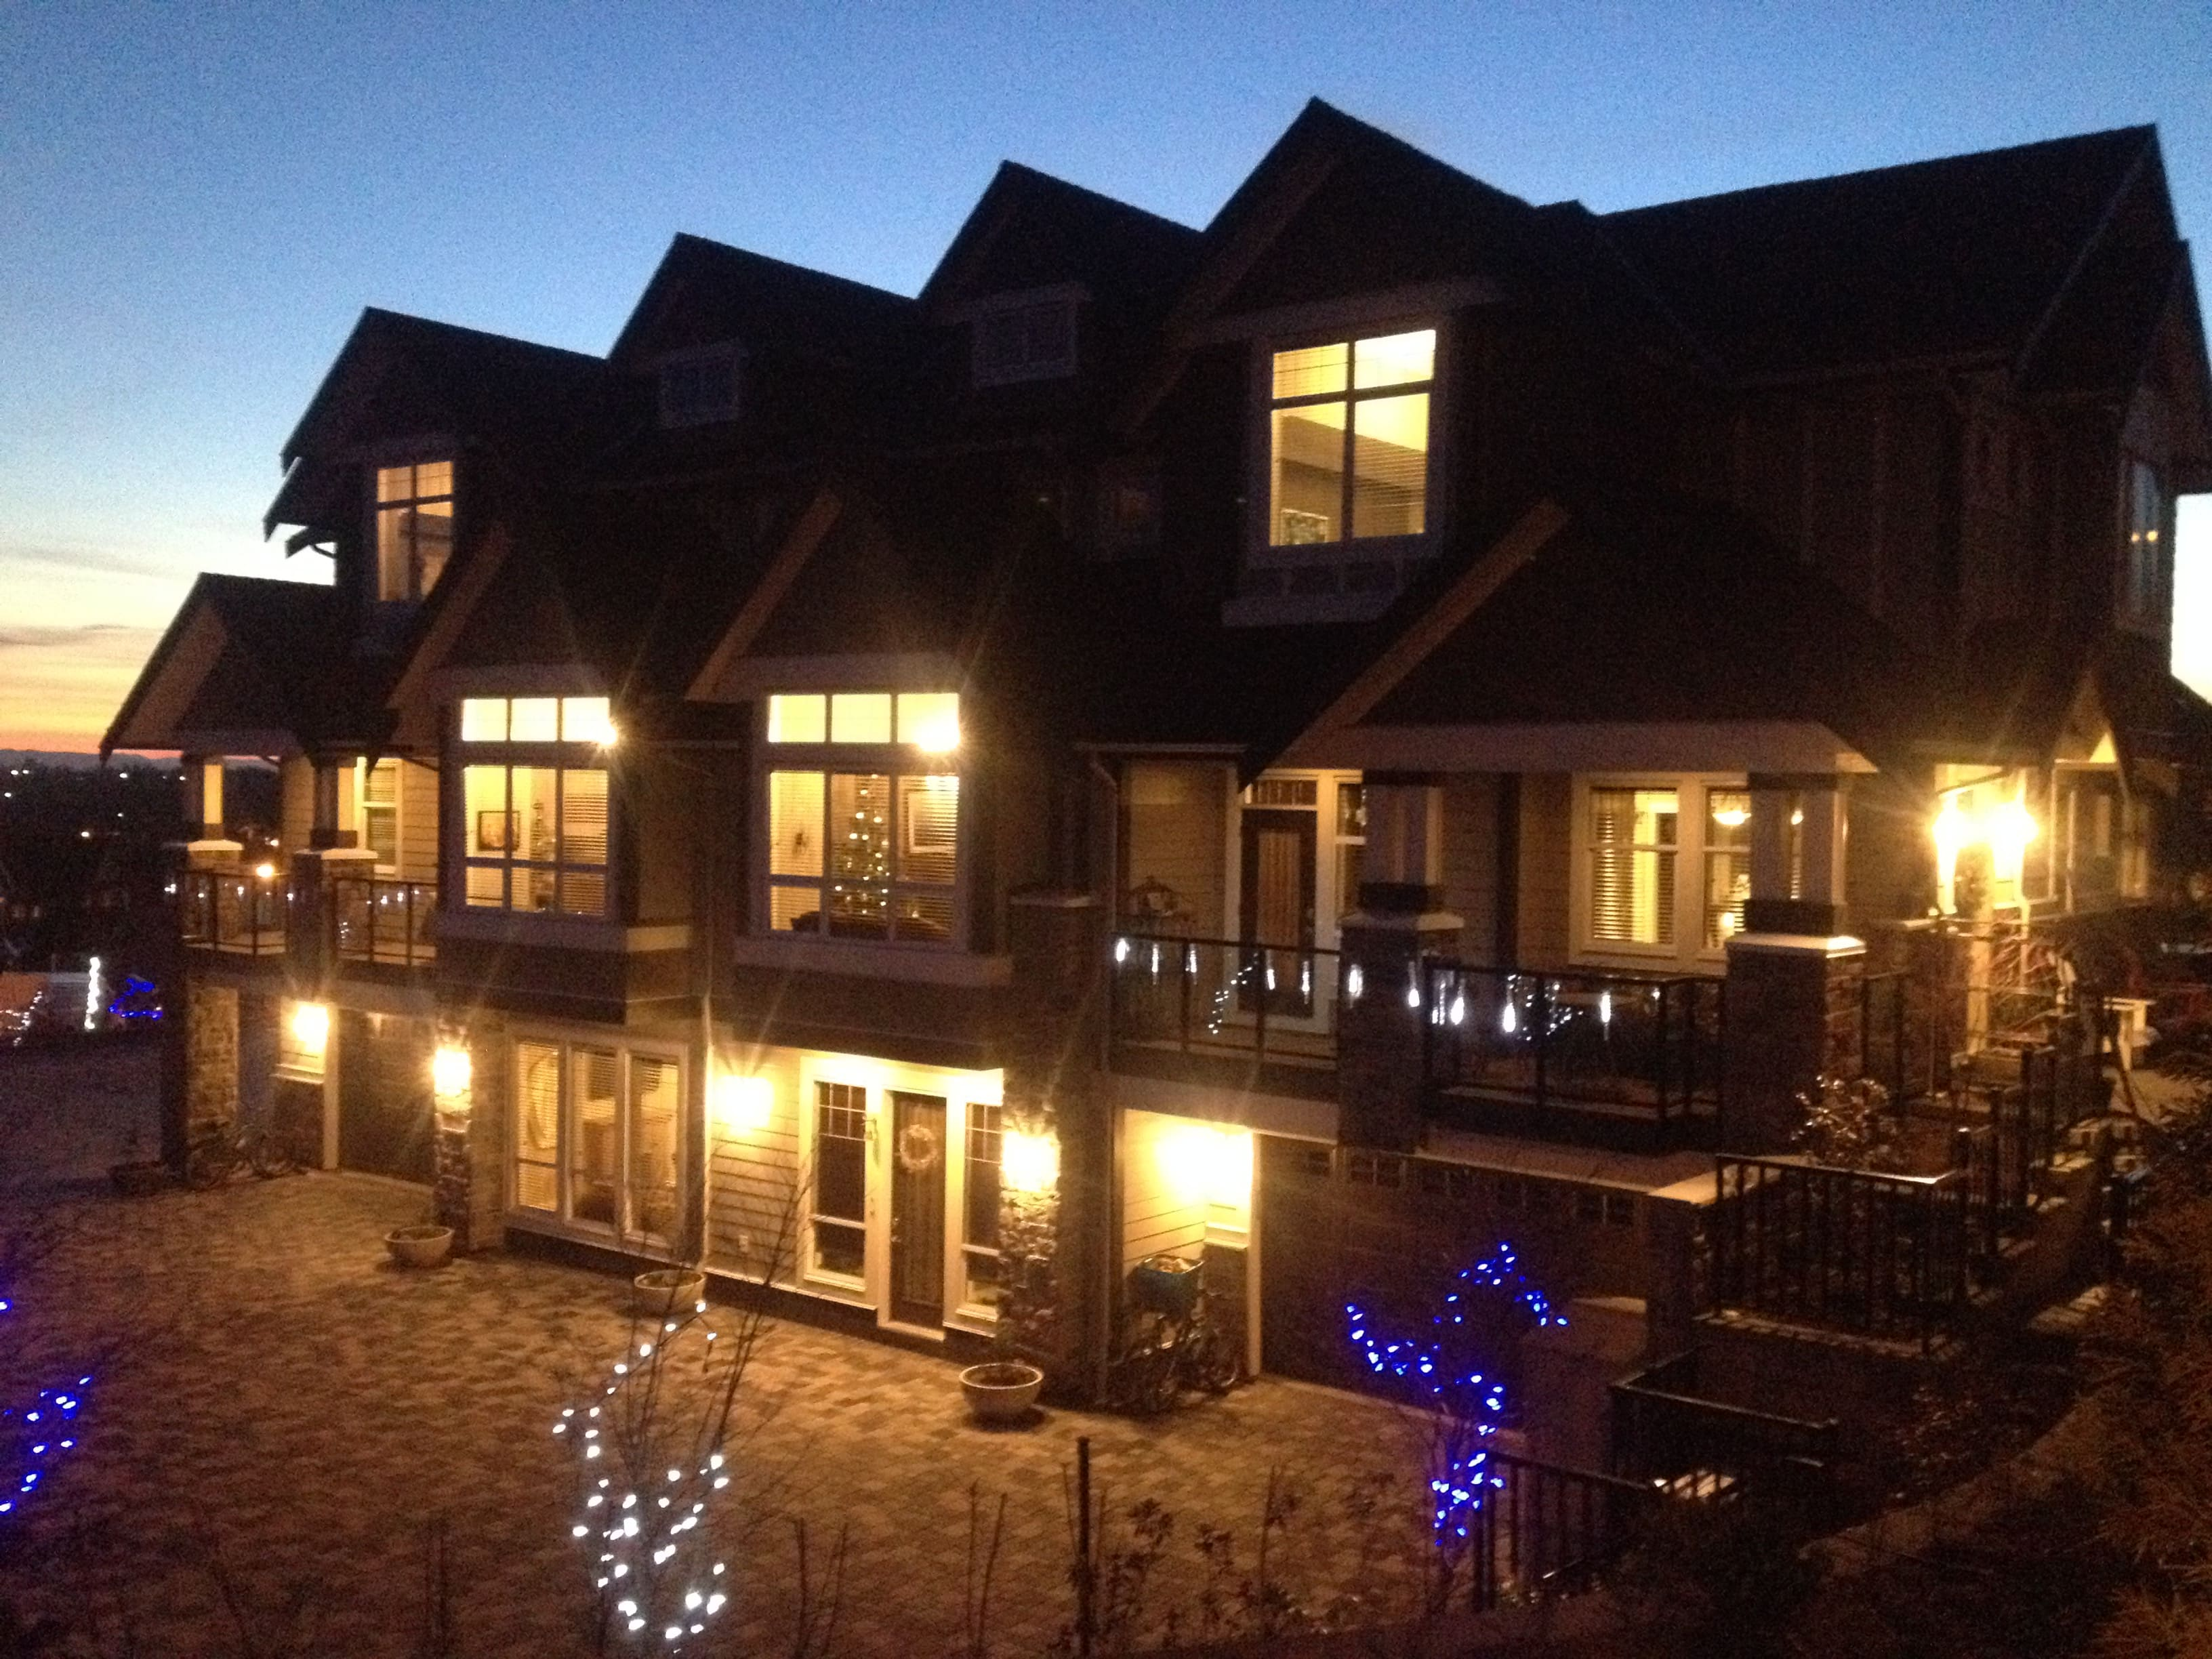 brookside-inn-exterior-night.jpg